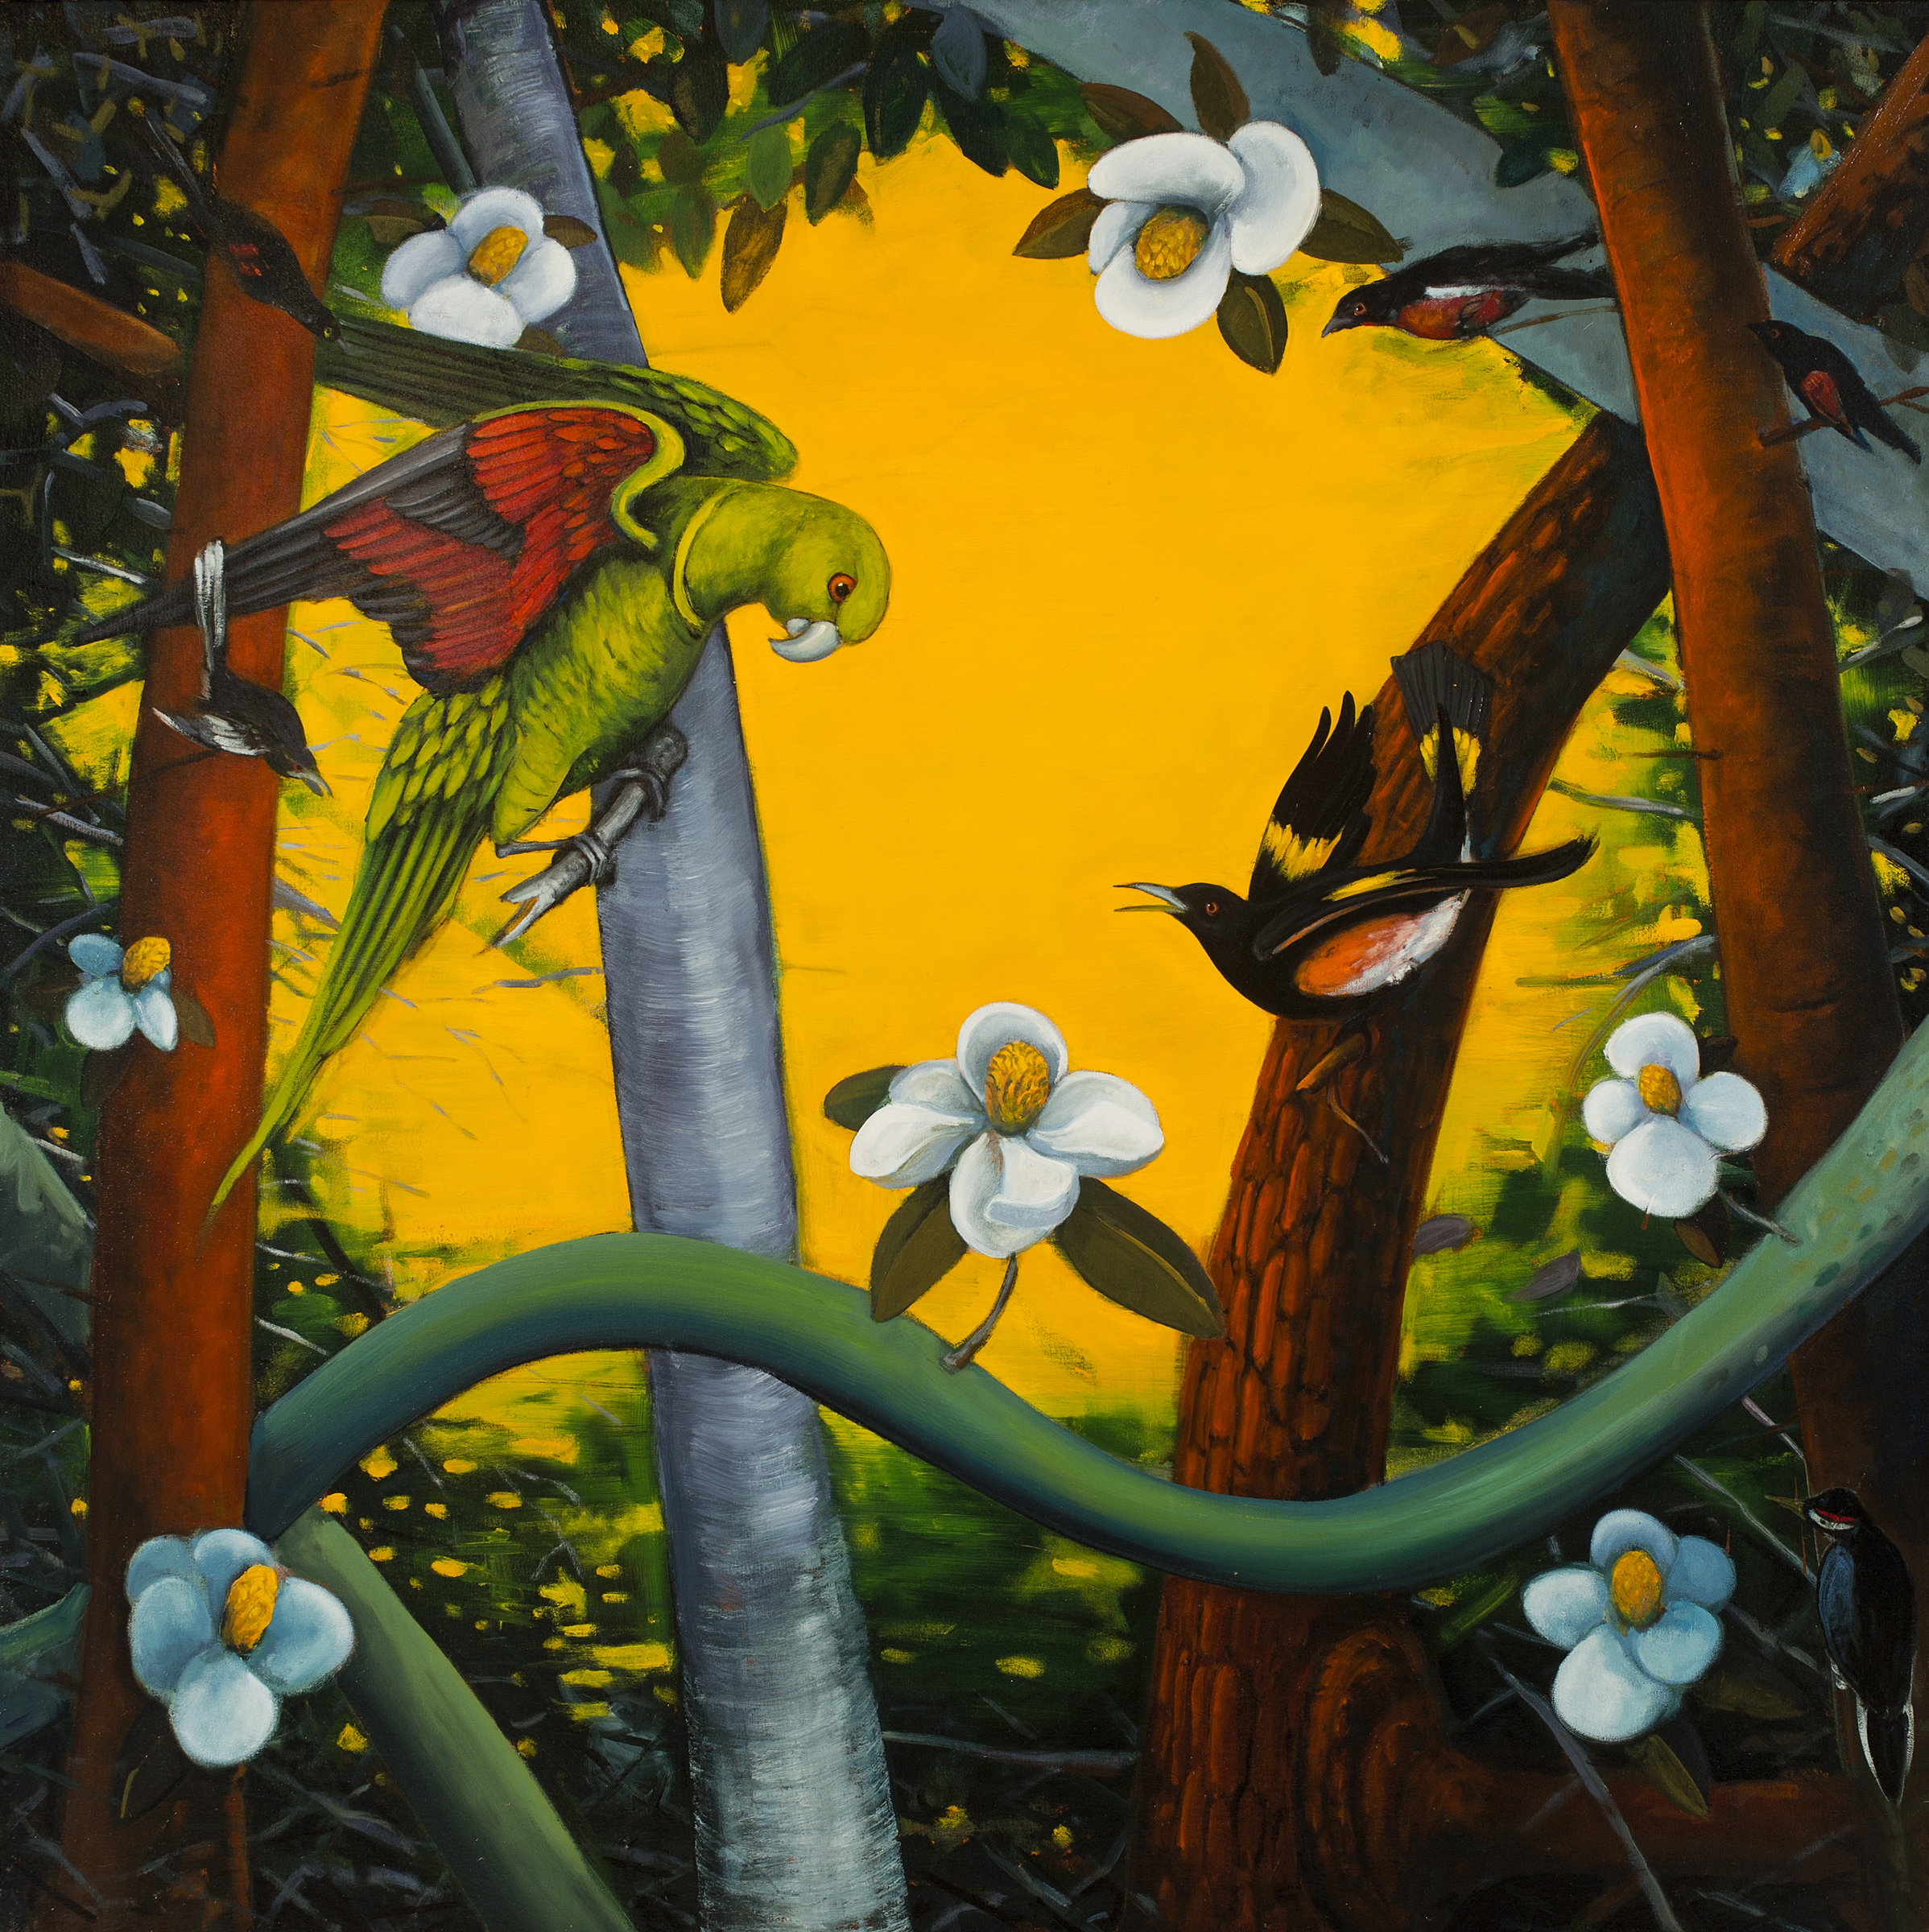 Rights of Spring  - 2015 - Oil on canvas - 50x50 in / 127x127 cm